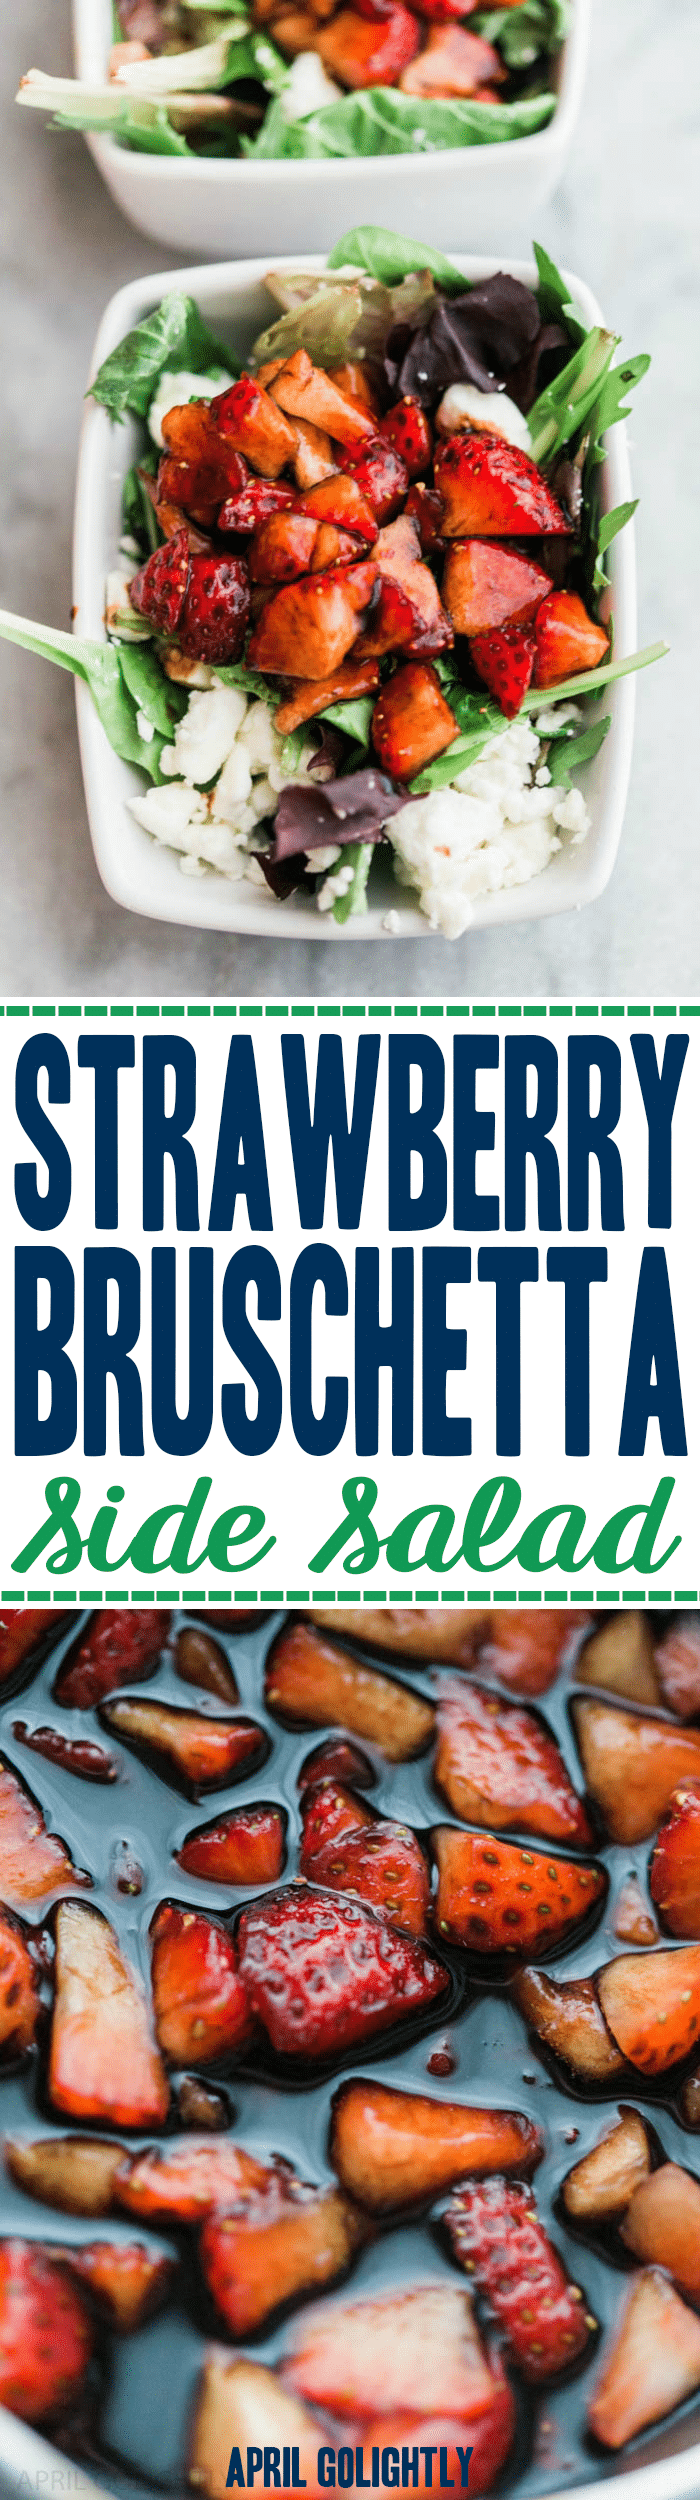 Strawberry Bruschetta Side Salad Recipe perfect healthy side salad and dish for any dinner this season #SundaySupper #FLStrawberry